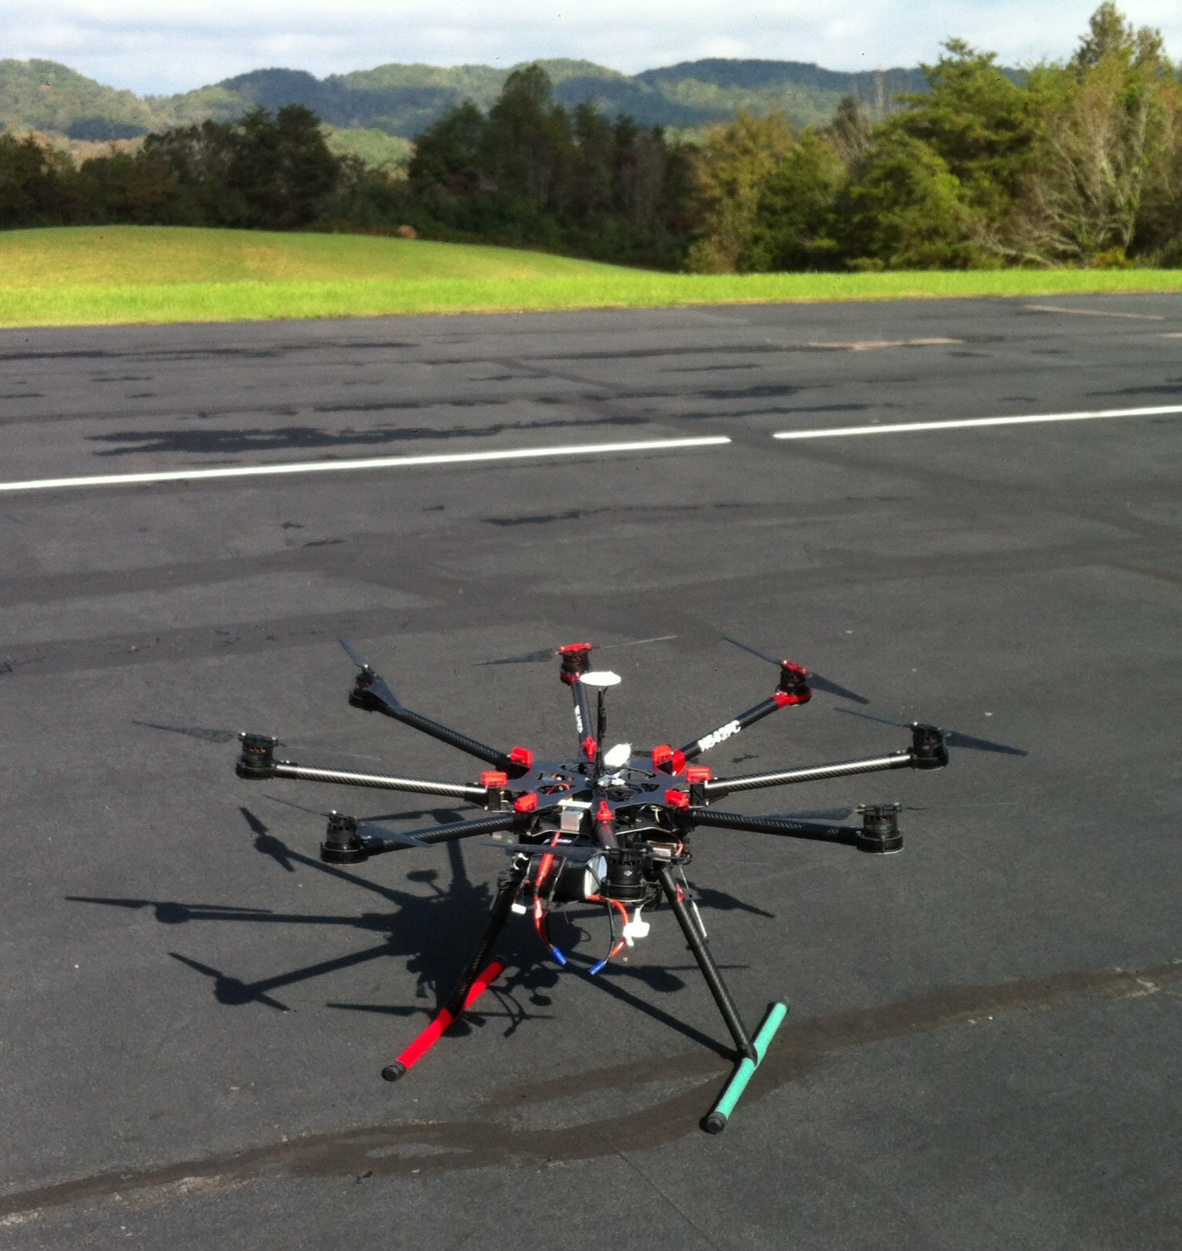 DJI S-1000 multi-rotor helicopter fitted with sensors and cameras